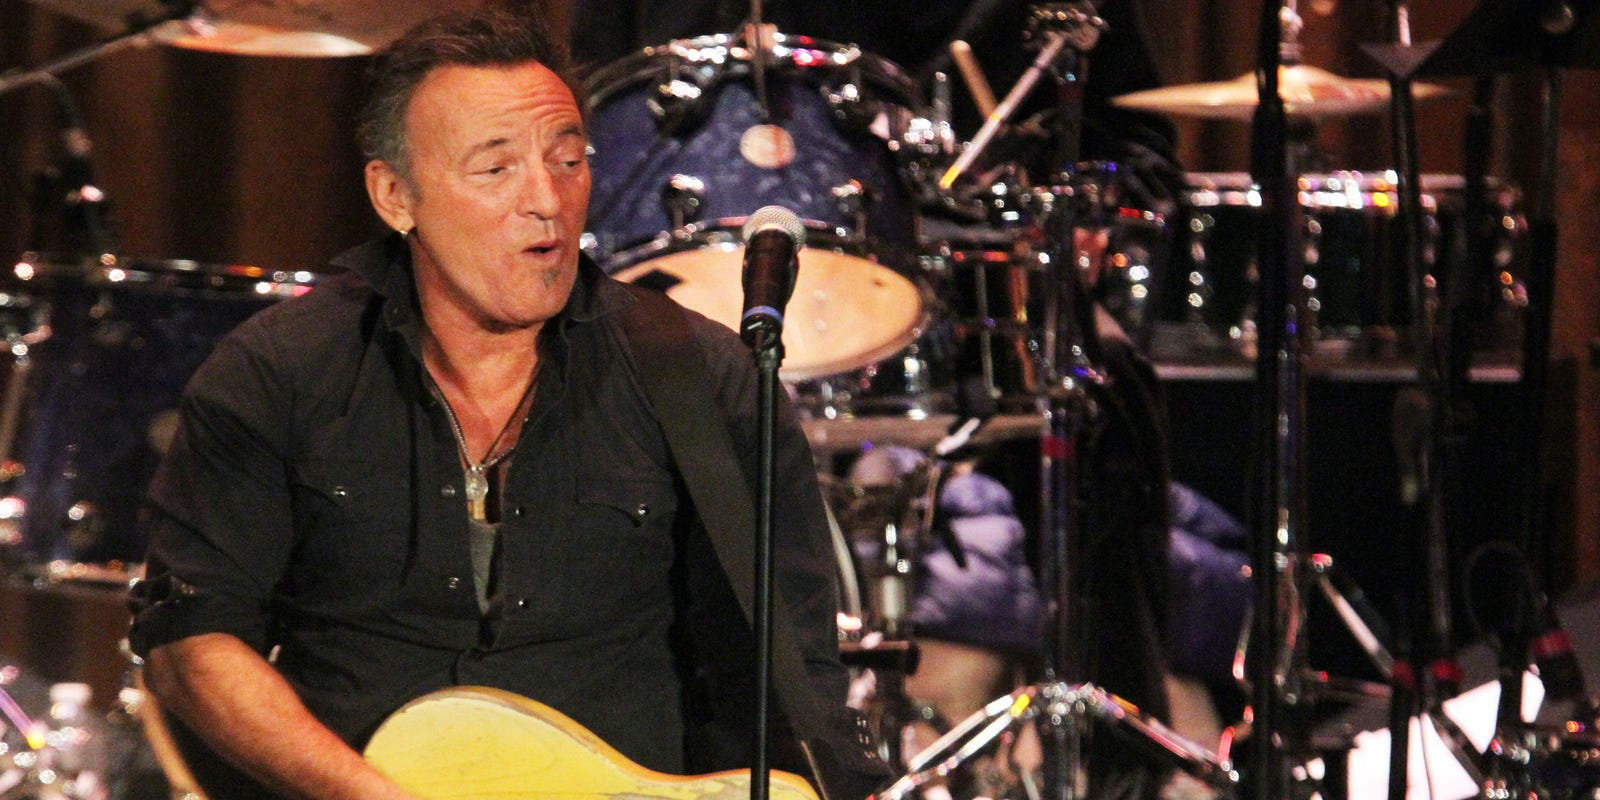 Bruce Springsteen a weekend warrior in Freehold, Asbury Park, NYC on E Street Radio show